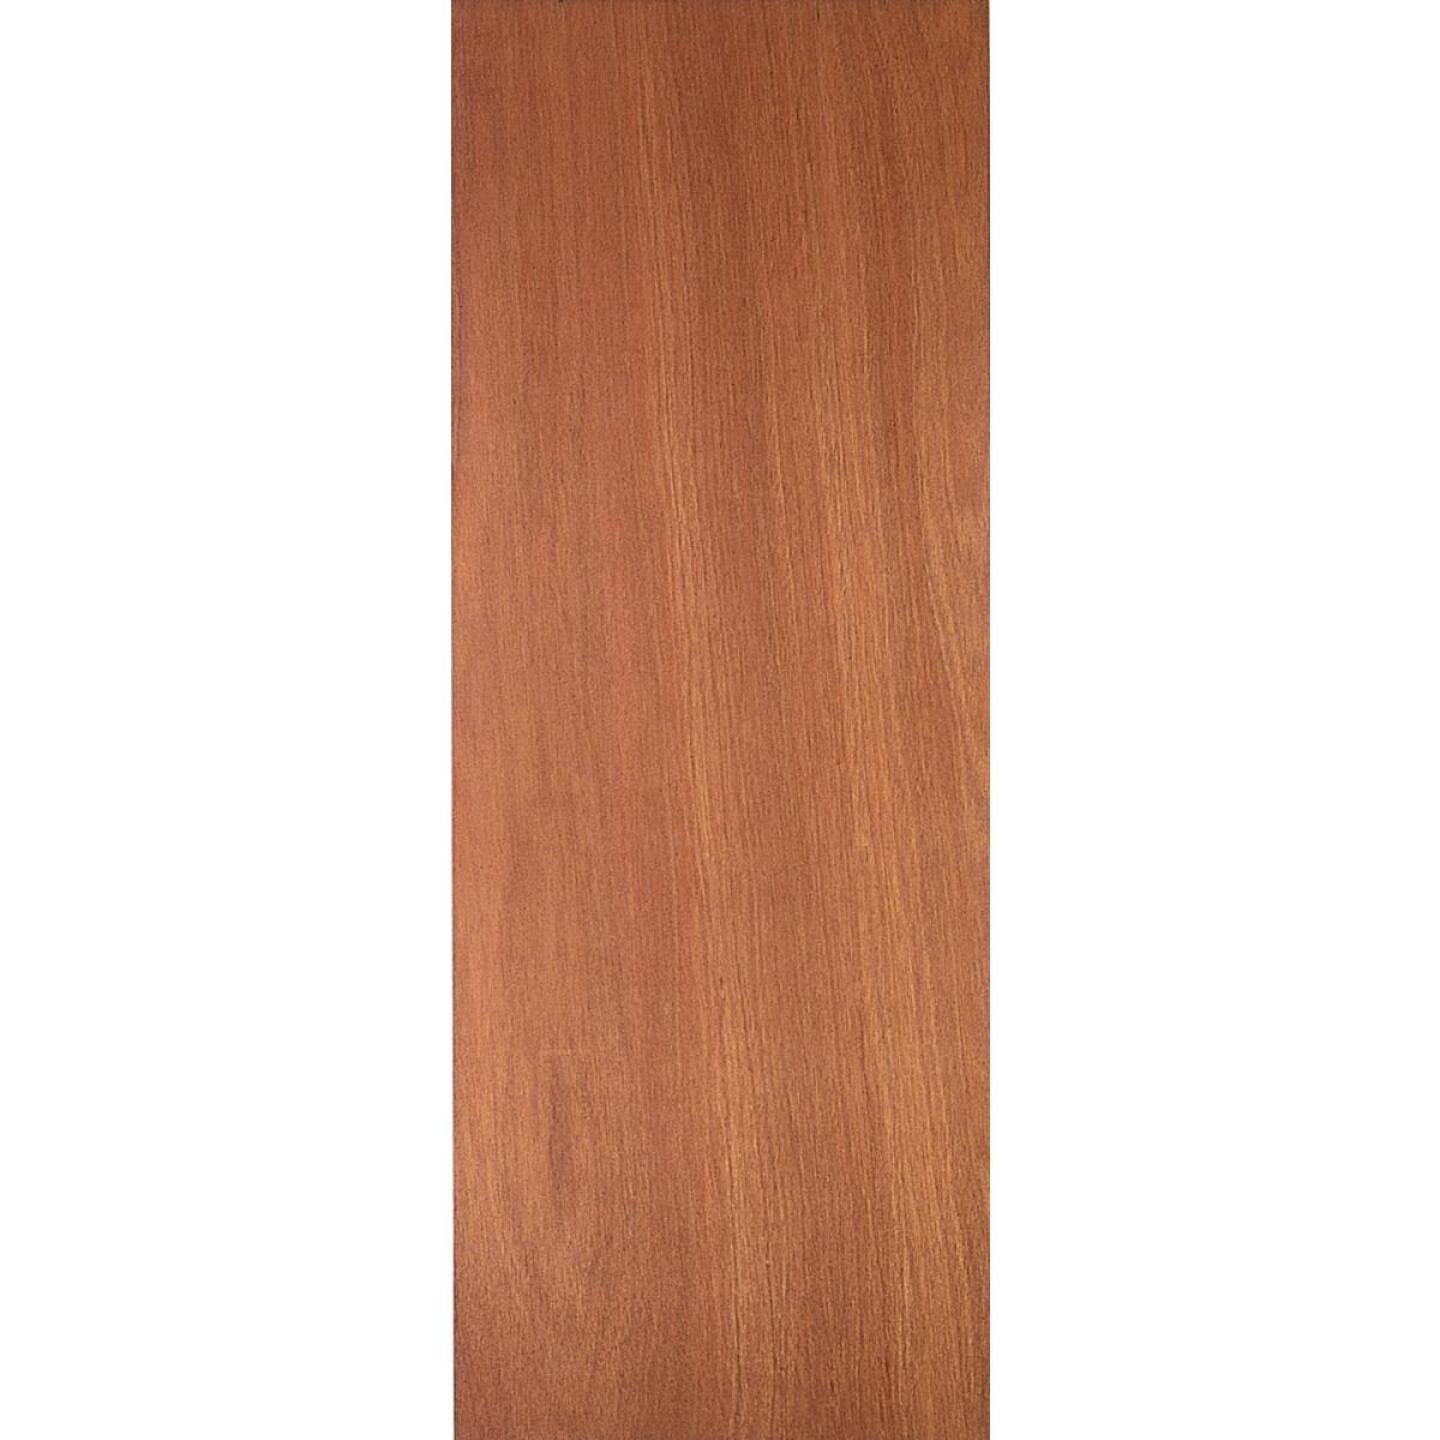 Masonite 34 In. W. x 80 In. H. Lauan Wood Interior Hollow Core Door Slab Image 1